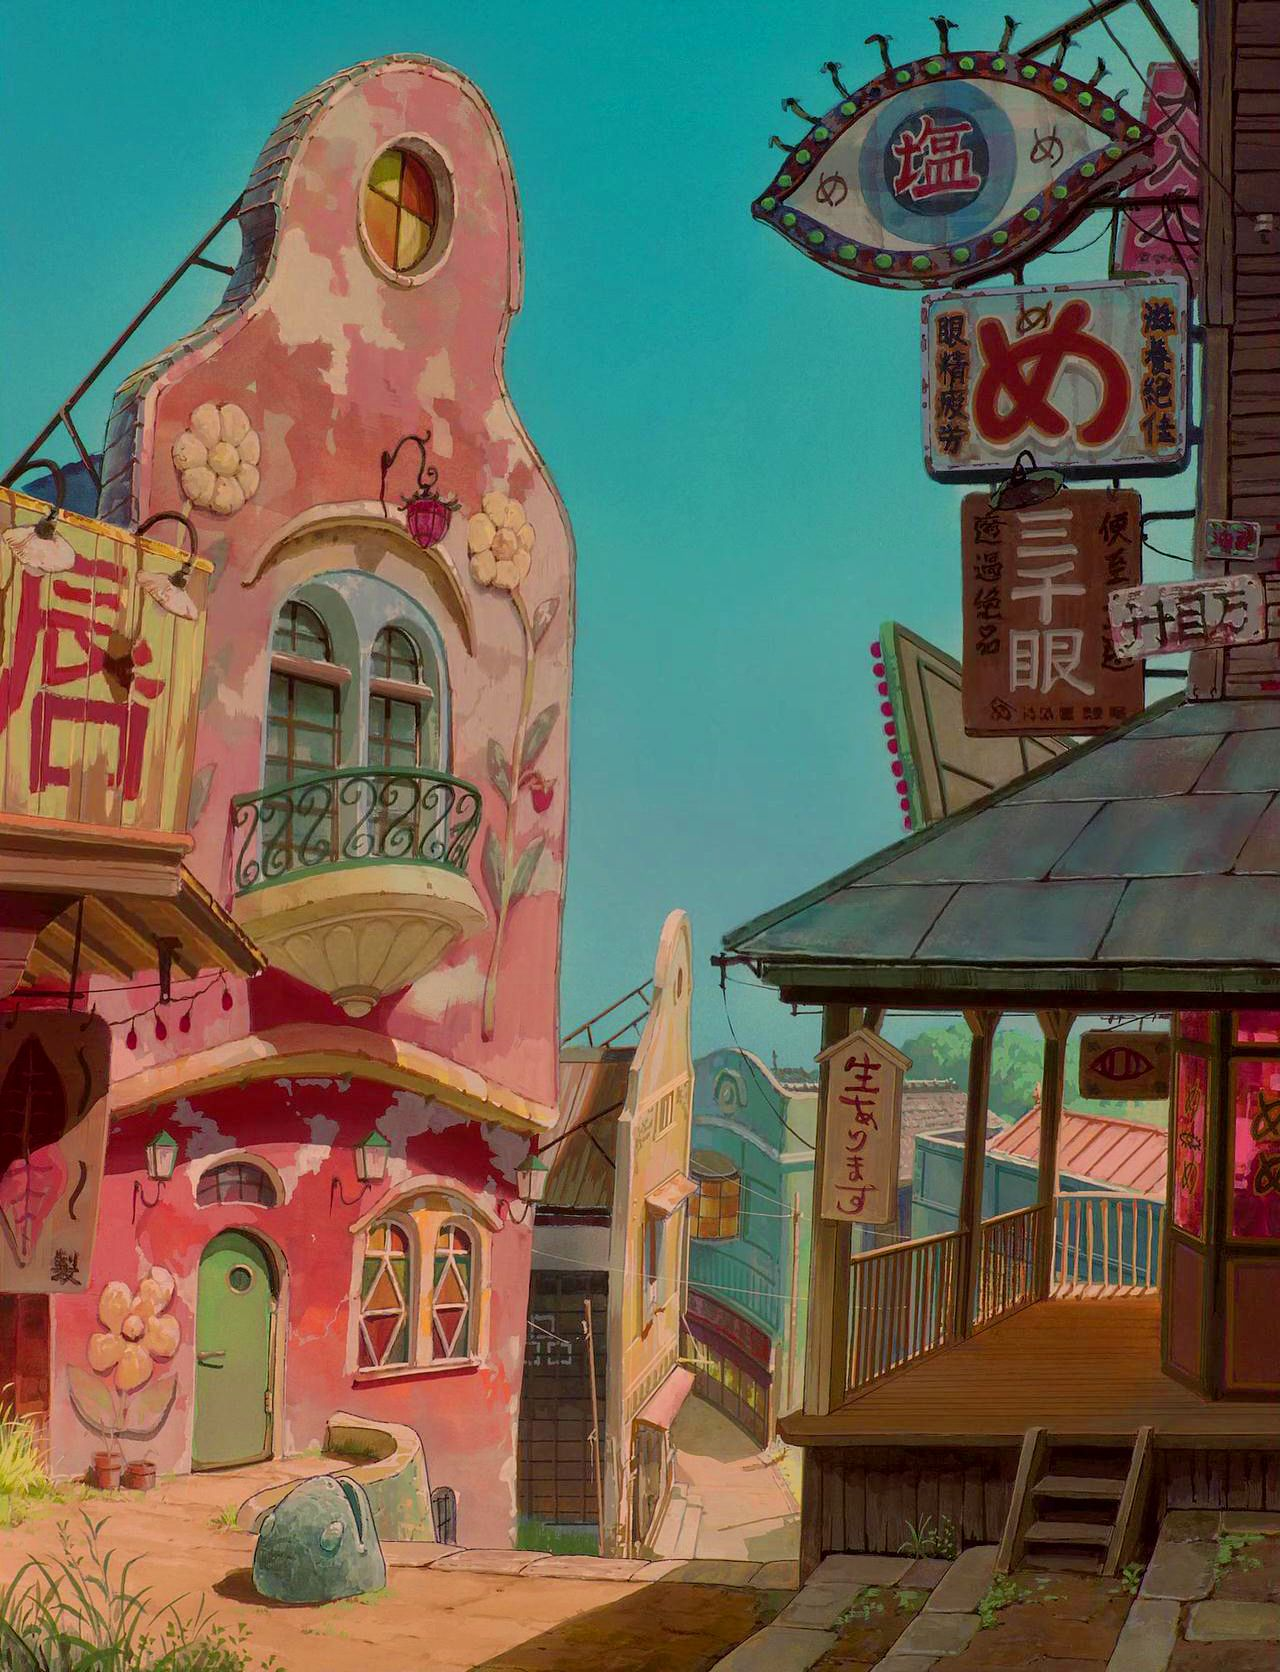 Pin By Daniel Peralta Navarro On Concept Art Studio Ghibli Art Studio Ghibli Background Ghibli Art